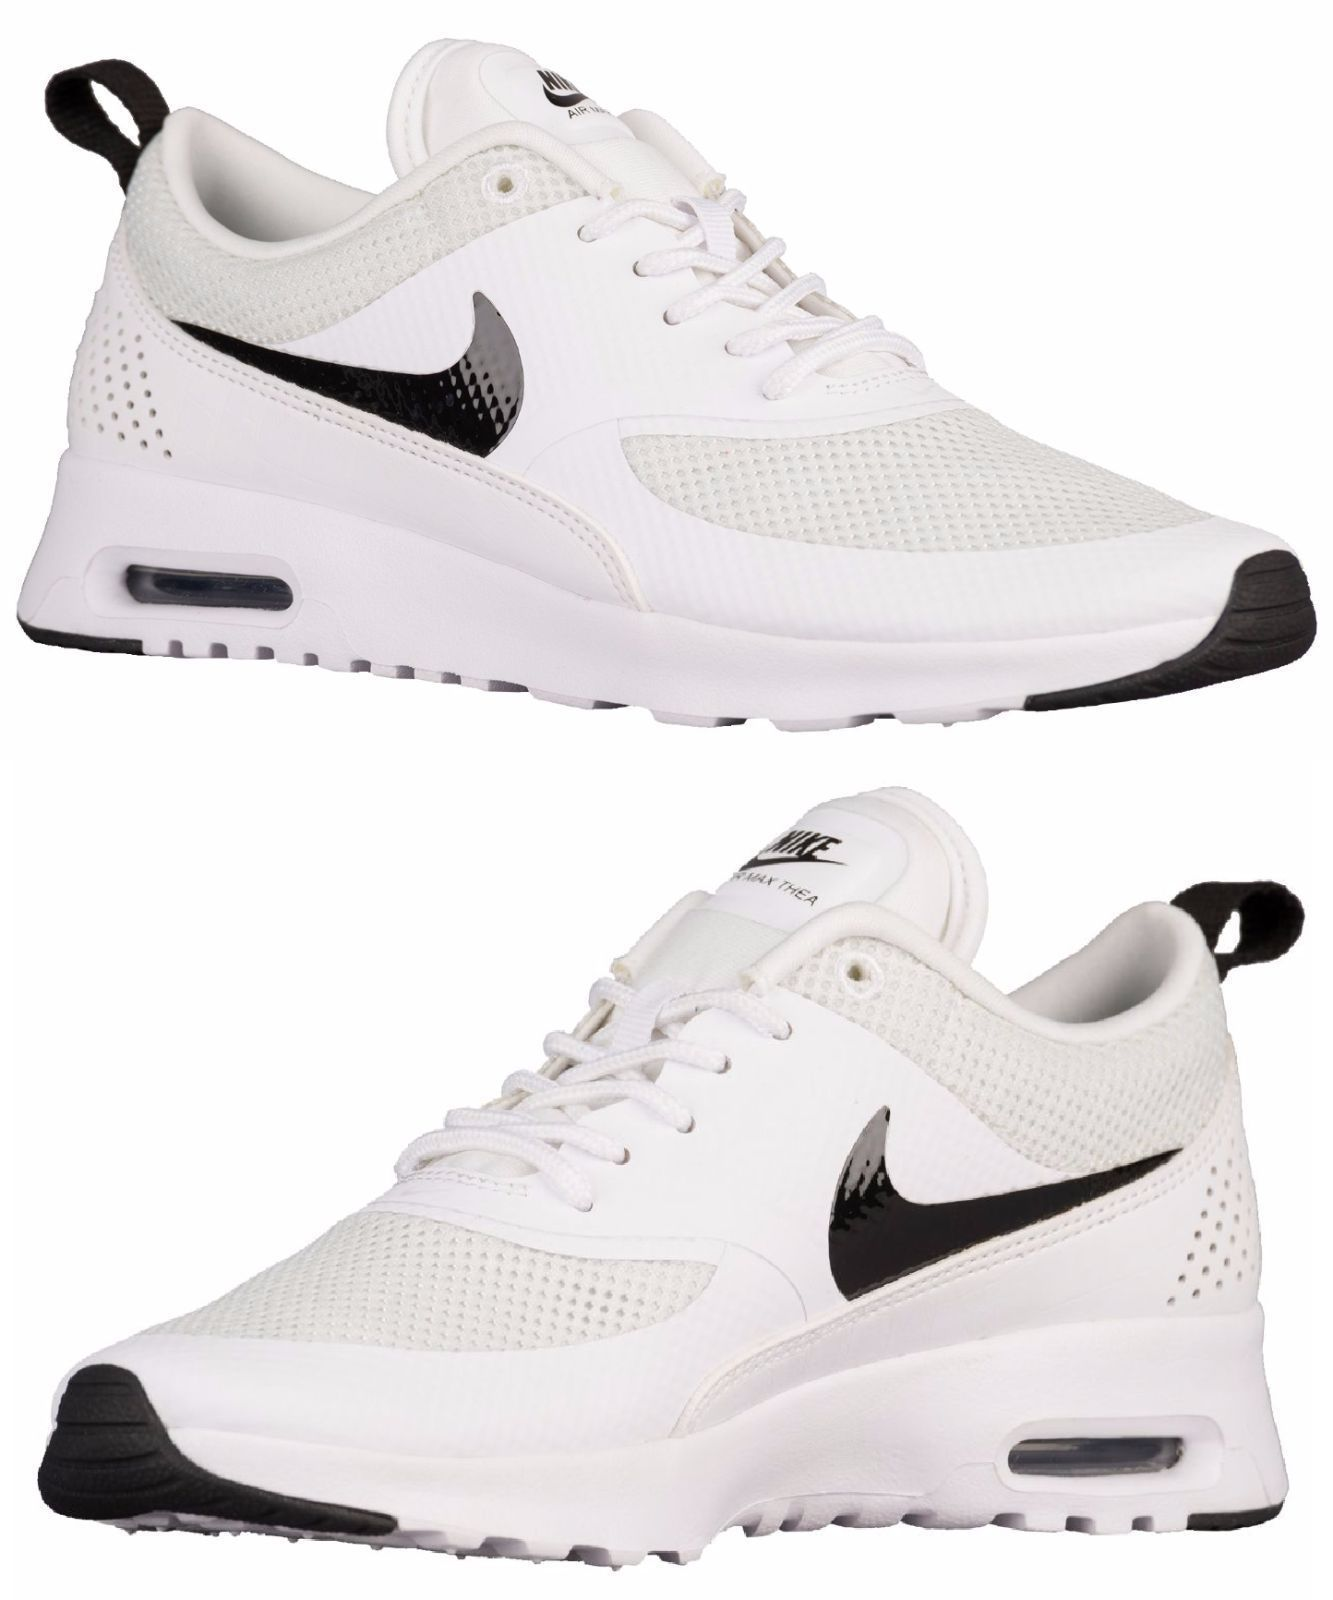 low priced 161e0 51c2d Nike Air Max Thea Women S Running White - Black - Pure Platinum Authentic  Usa Sz